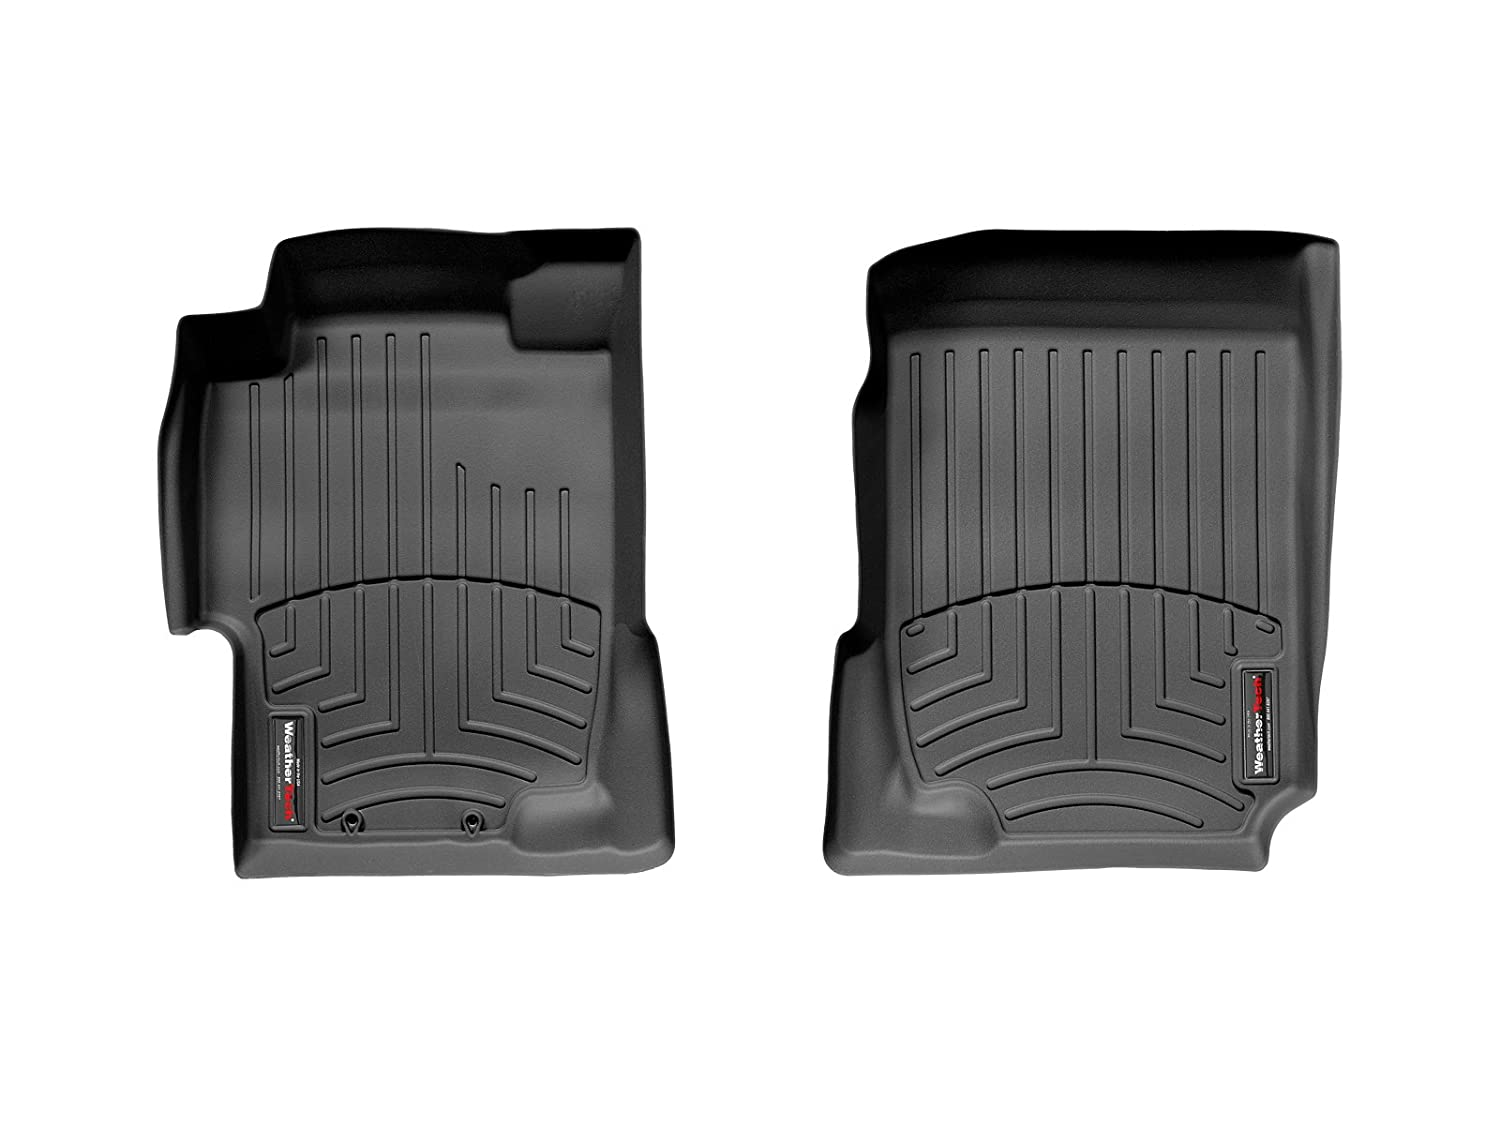 Weathertech mats australia - Amazon Com Weathertech Custom Fit Front Floorliner For Honda Accord Black Automotive